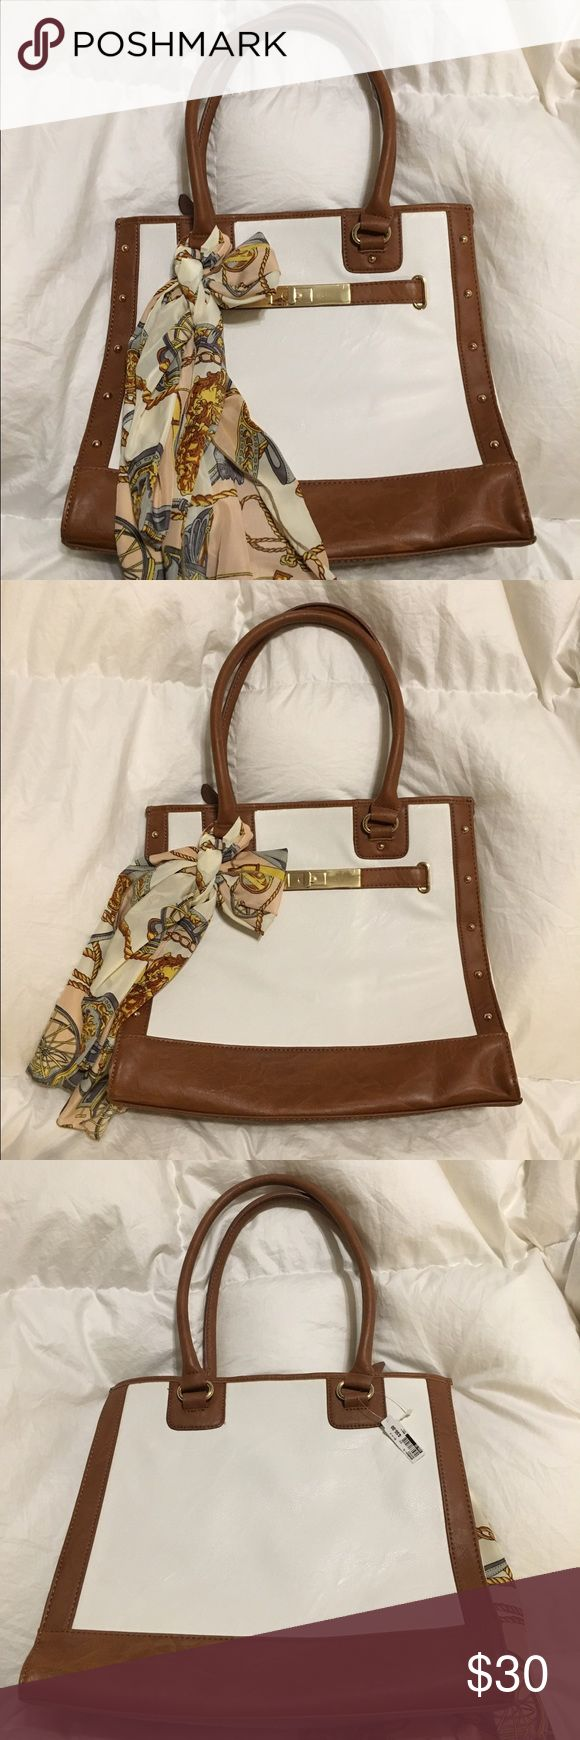 Brand new Aldo purse! Brand new Aldo purse! The perfect addition to your spring or summer collection. Aldo Bags Shoulder Bags